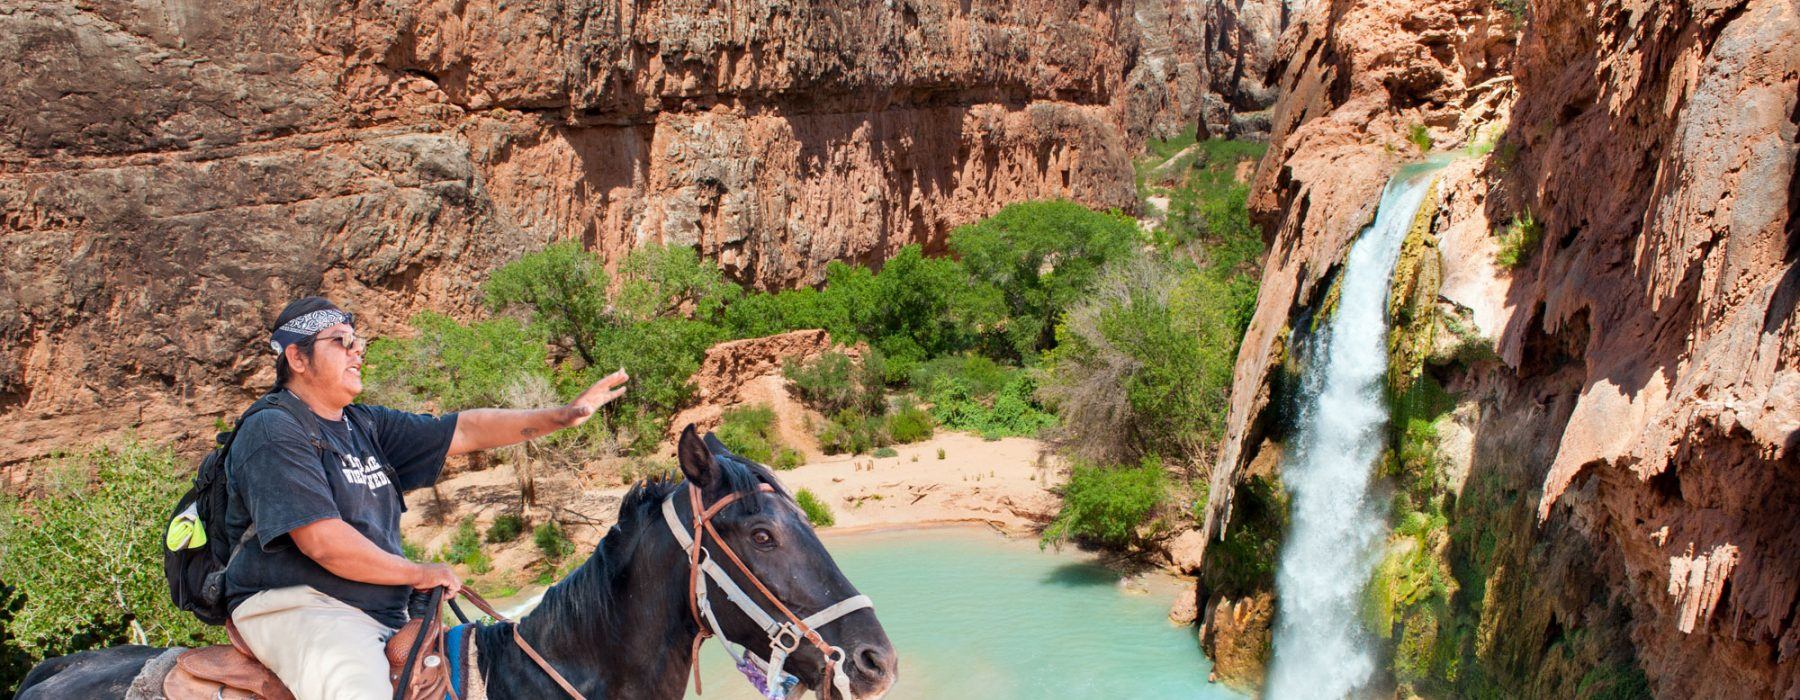 Havasupai tribe: Native American Indian, guardians of the Grand Canyon